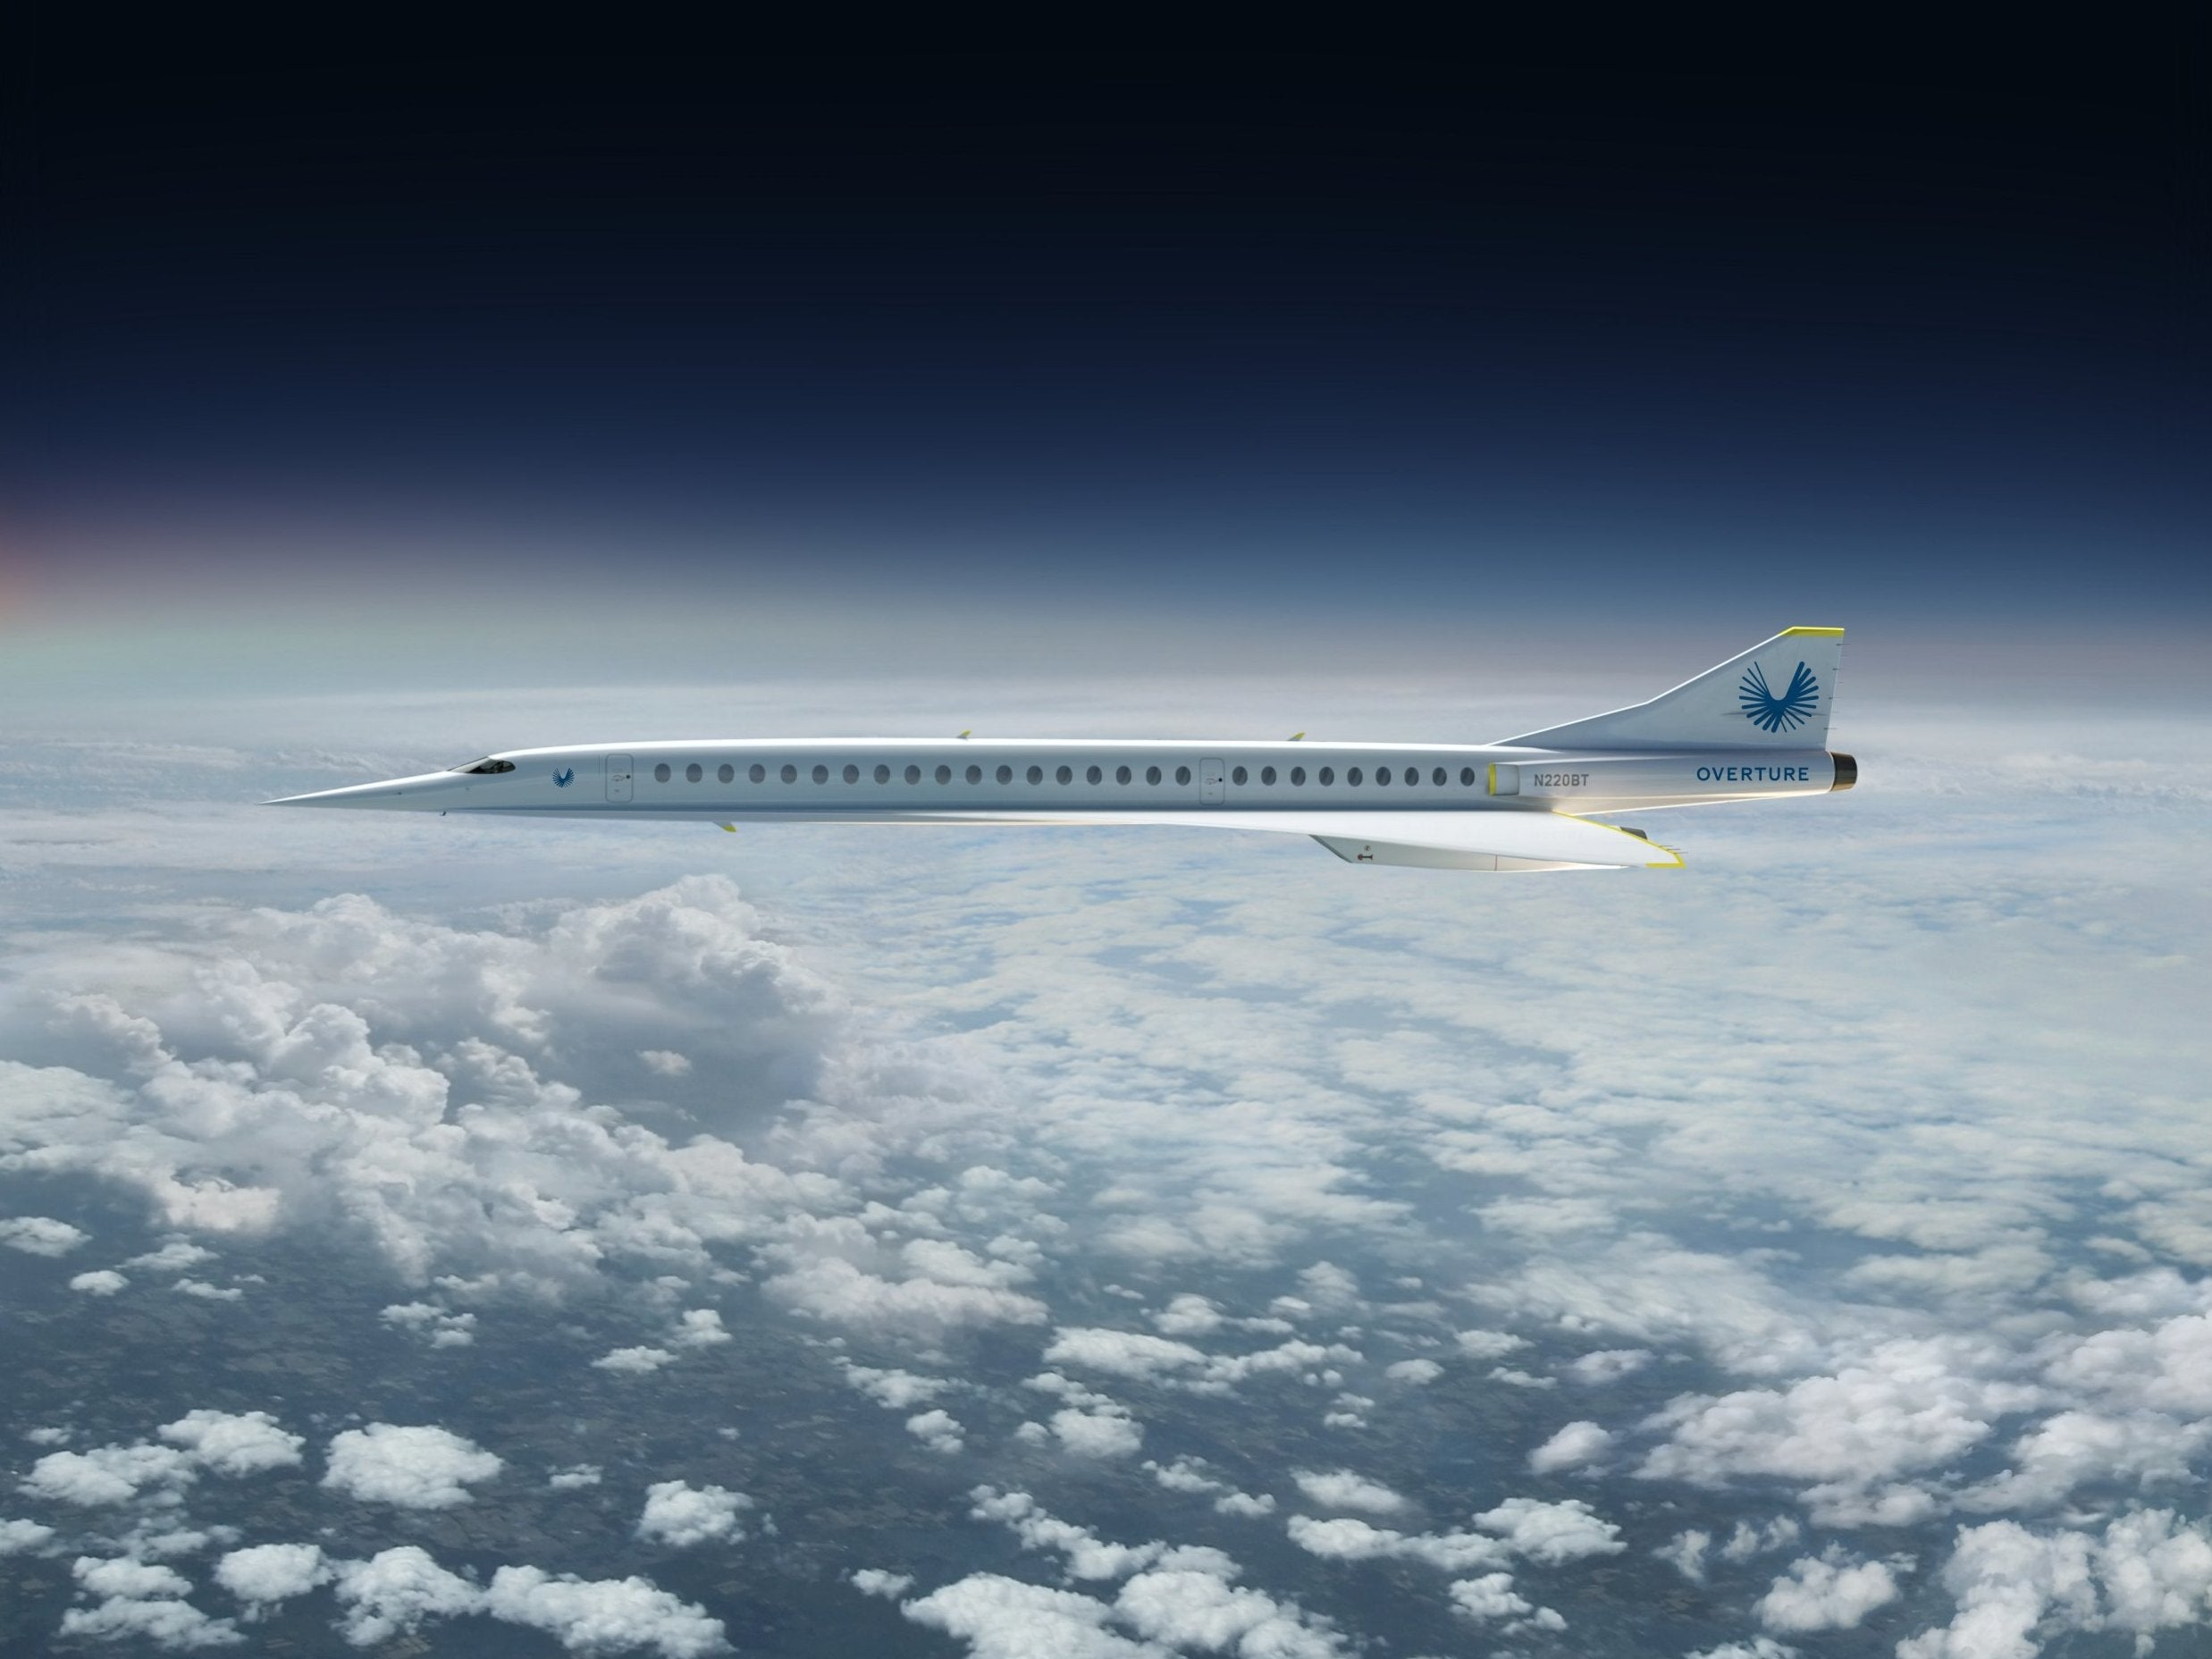 British people face pollution and hundreds of noise violations from supersonic aircraft, experts warn